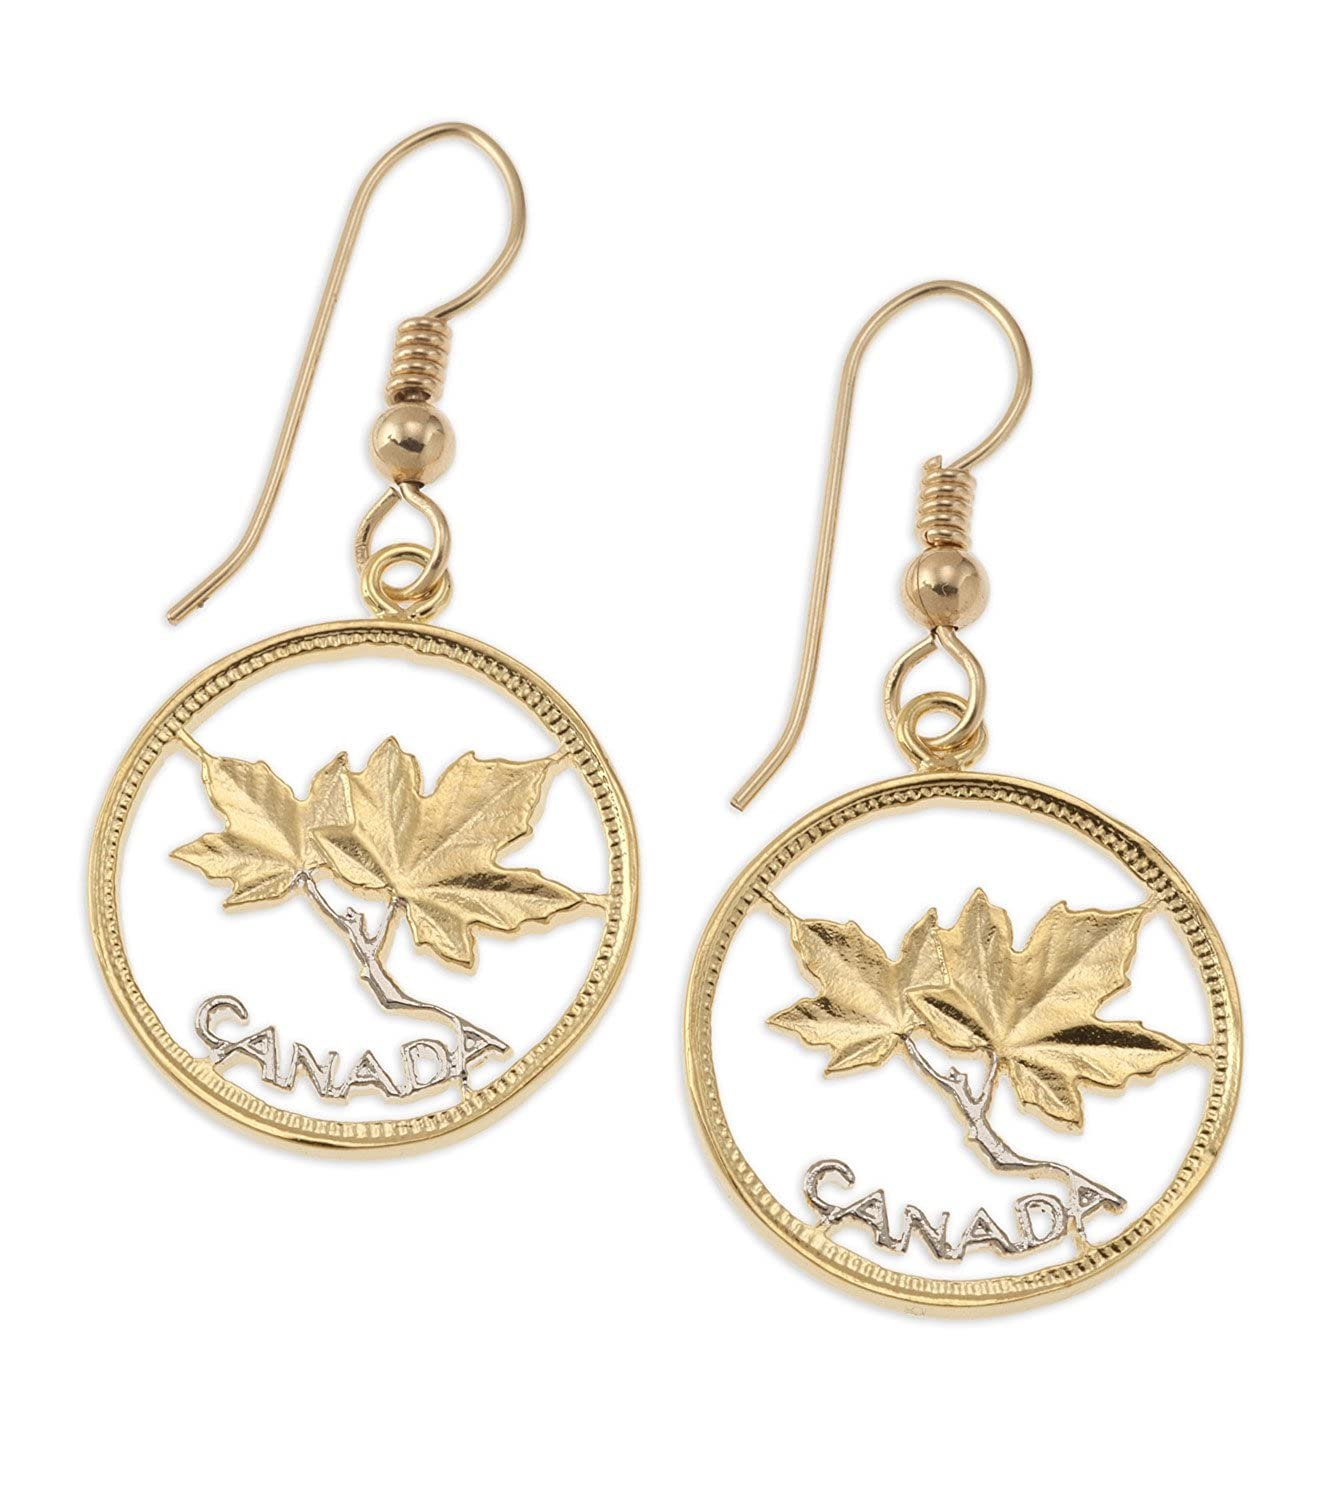 dbb2de2a2 Amazon.com: Canadian Maple Leaf Earrings, Canada One Cent Hand Cut Coin:  Jewelry